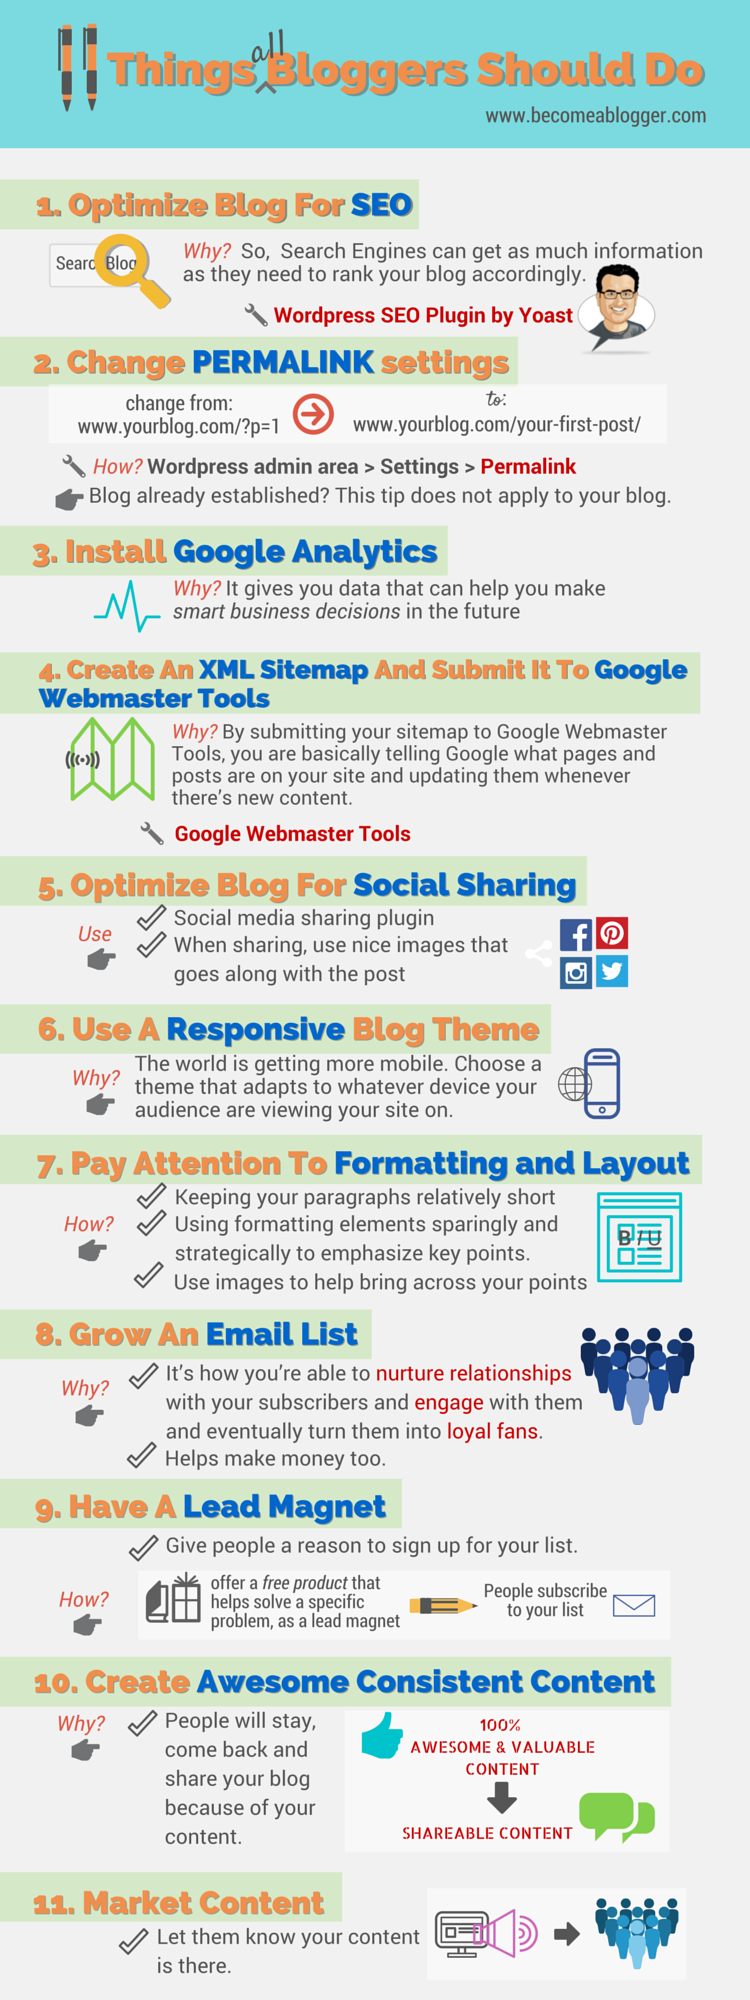 210 eleven things all bloggers should do become a blogger